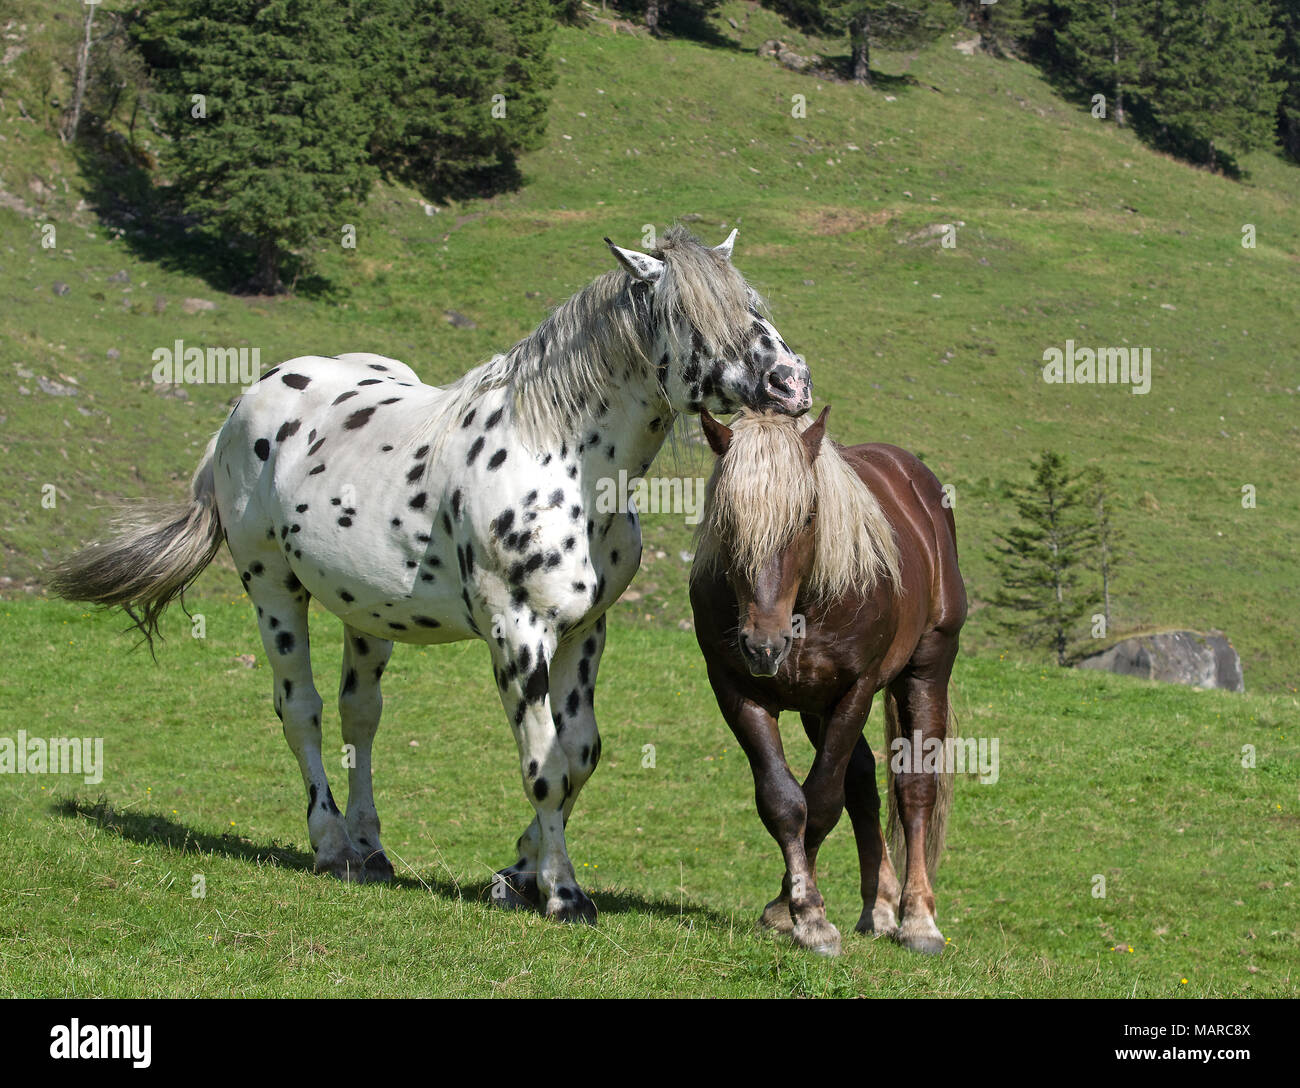 Noriker. Two stallions (leopard-spotted and chestnut) on an alpine meadow, Austria. The leopard-spotted showing dominance, which the other horse accepts by showing submissive behaviour - Stock Image